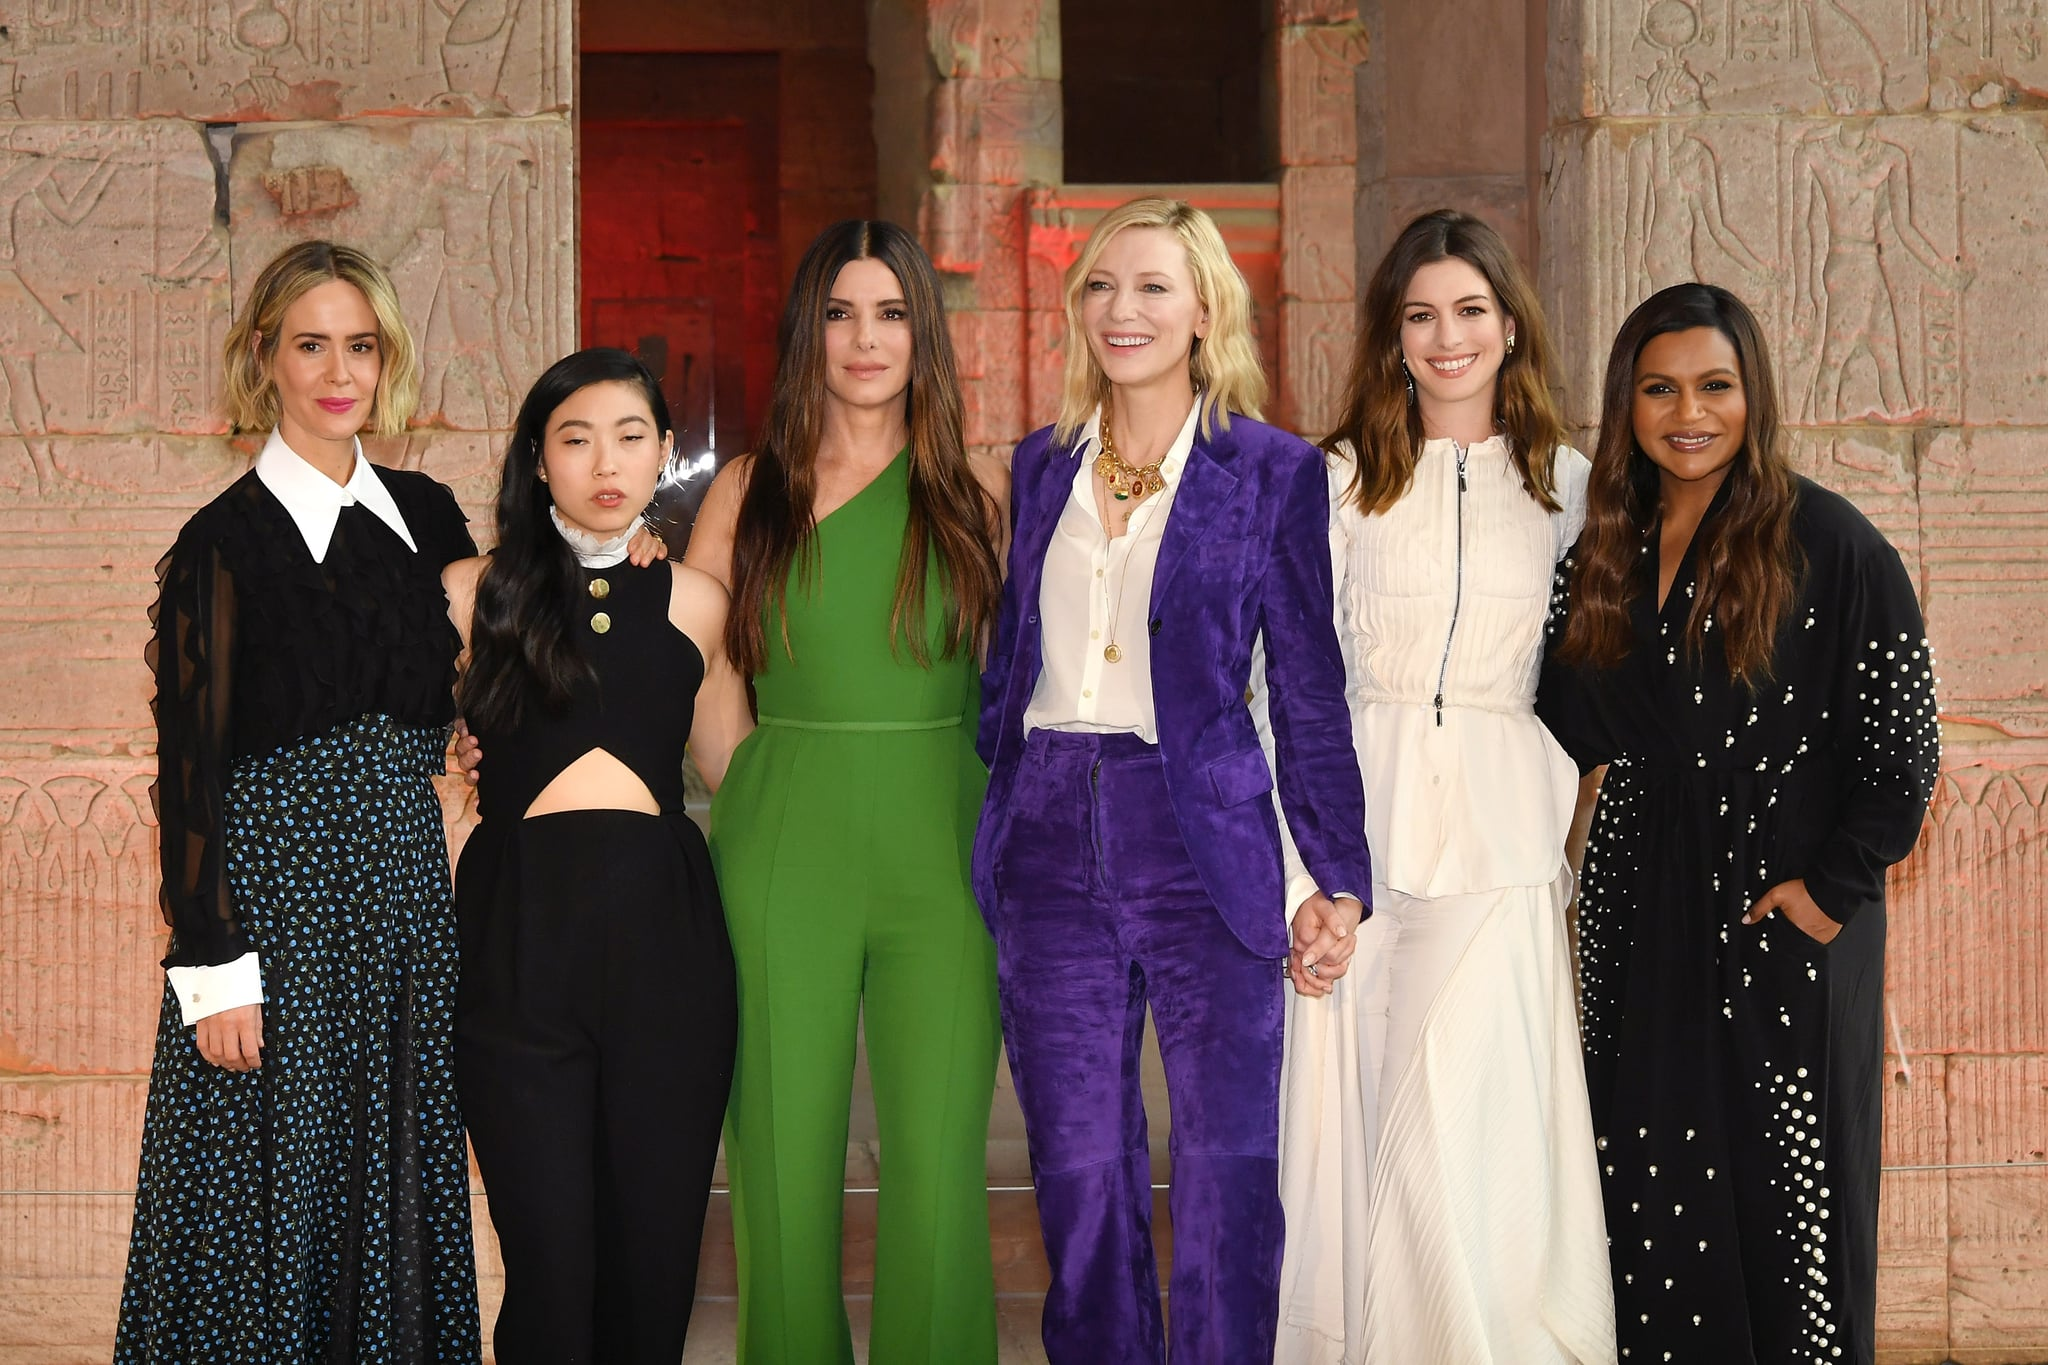 NEW YORK, NY - MAY 22:  (L-R) Sarah Paulson, Awkwafina, Sandra Bullock, Cate Blanchett, Anne Hathaway and Mindy Kaling attend the